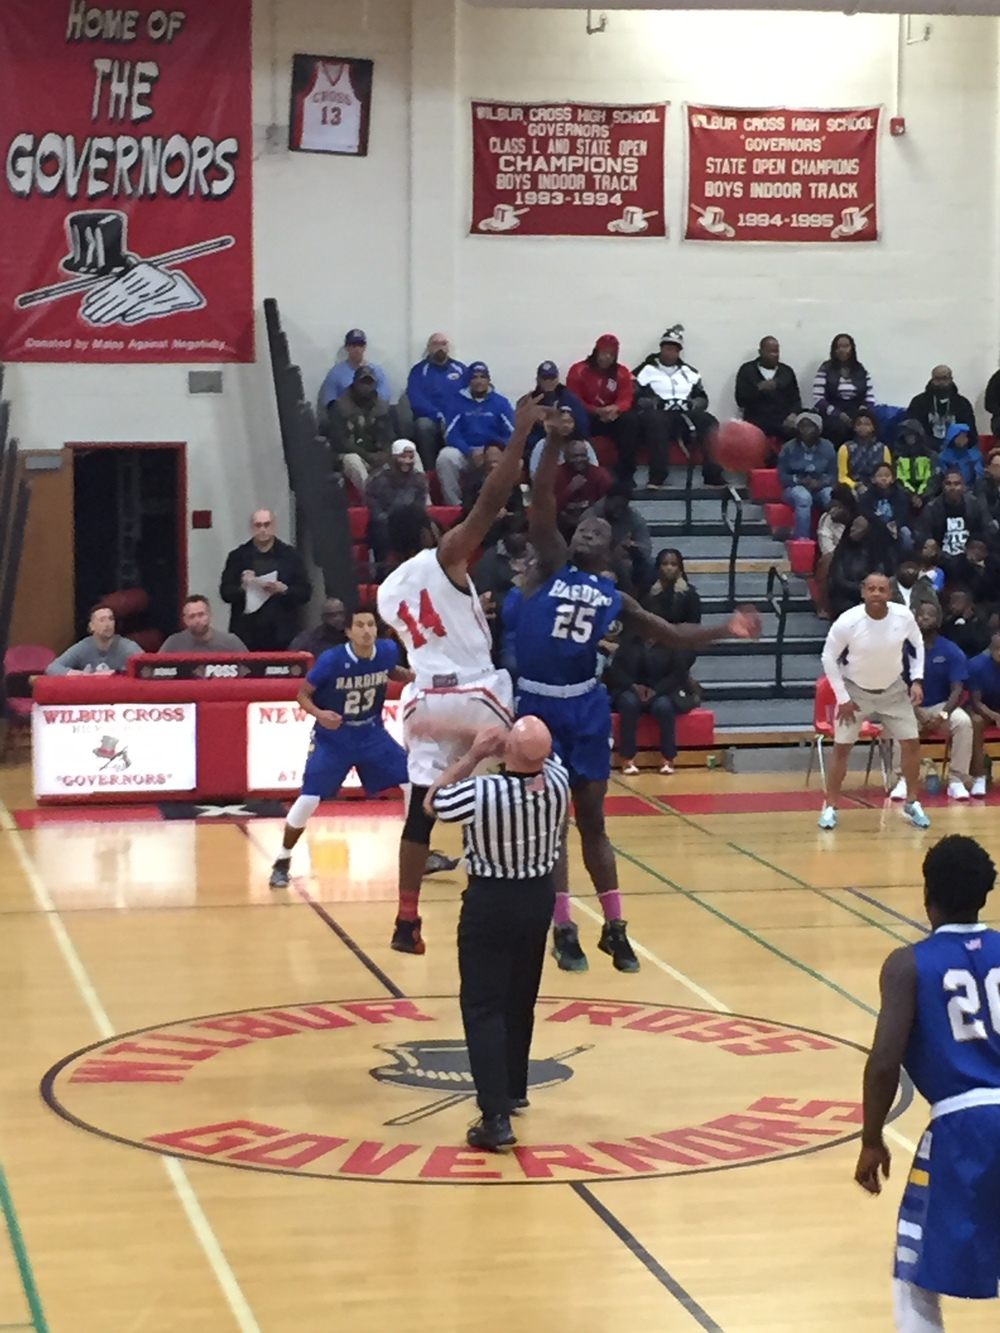 Tip off between Harding and Wilbur Cross. Provided by: CTHoopsNews